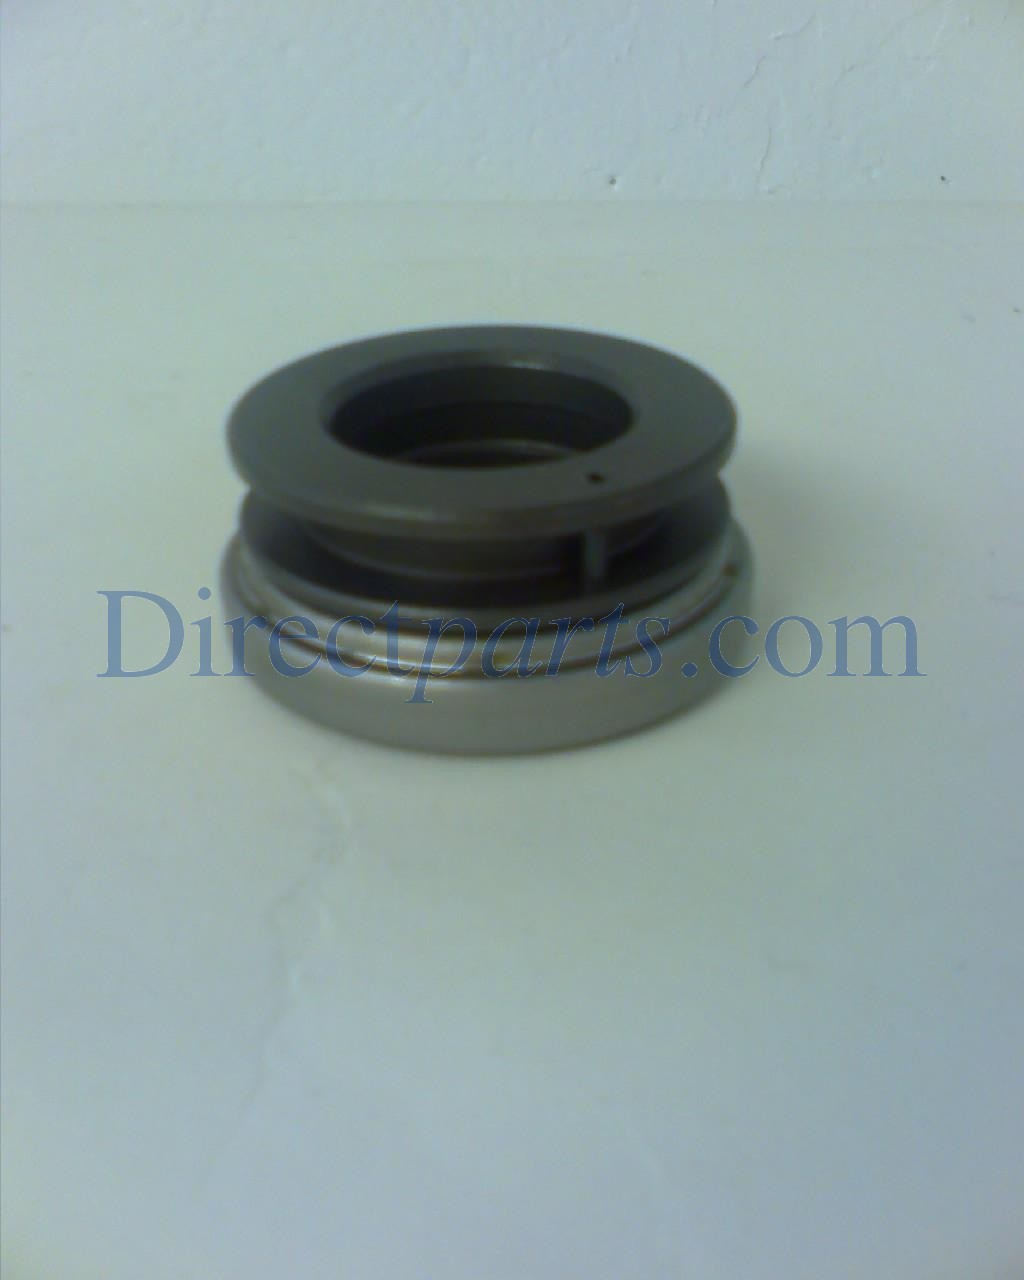 Throw-Out Bearing, Fits all Models With Daihatsu 327 Liquid Cooled Engine